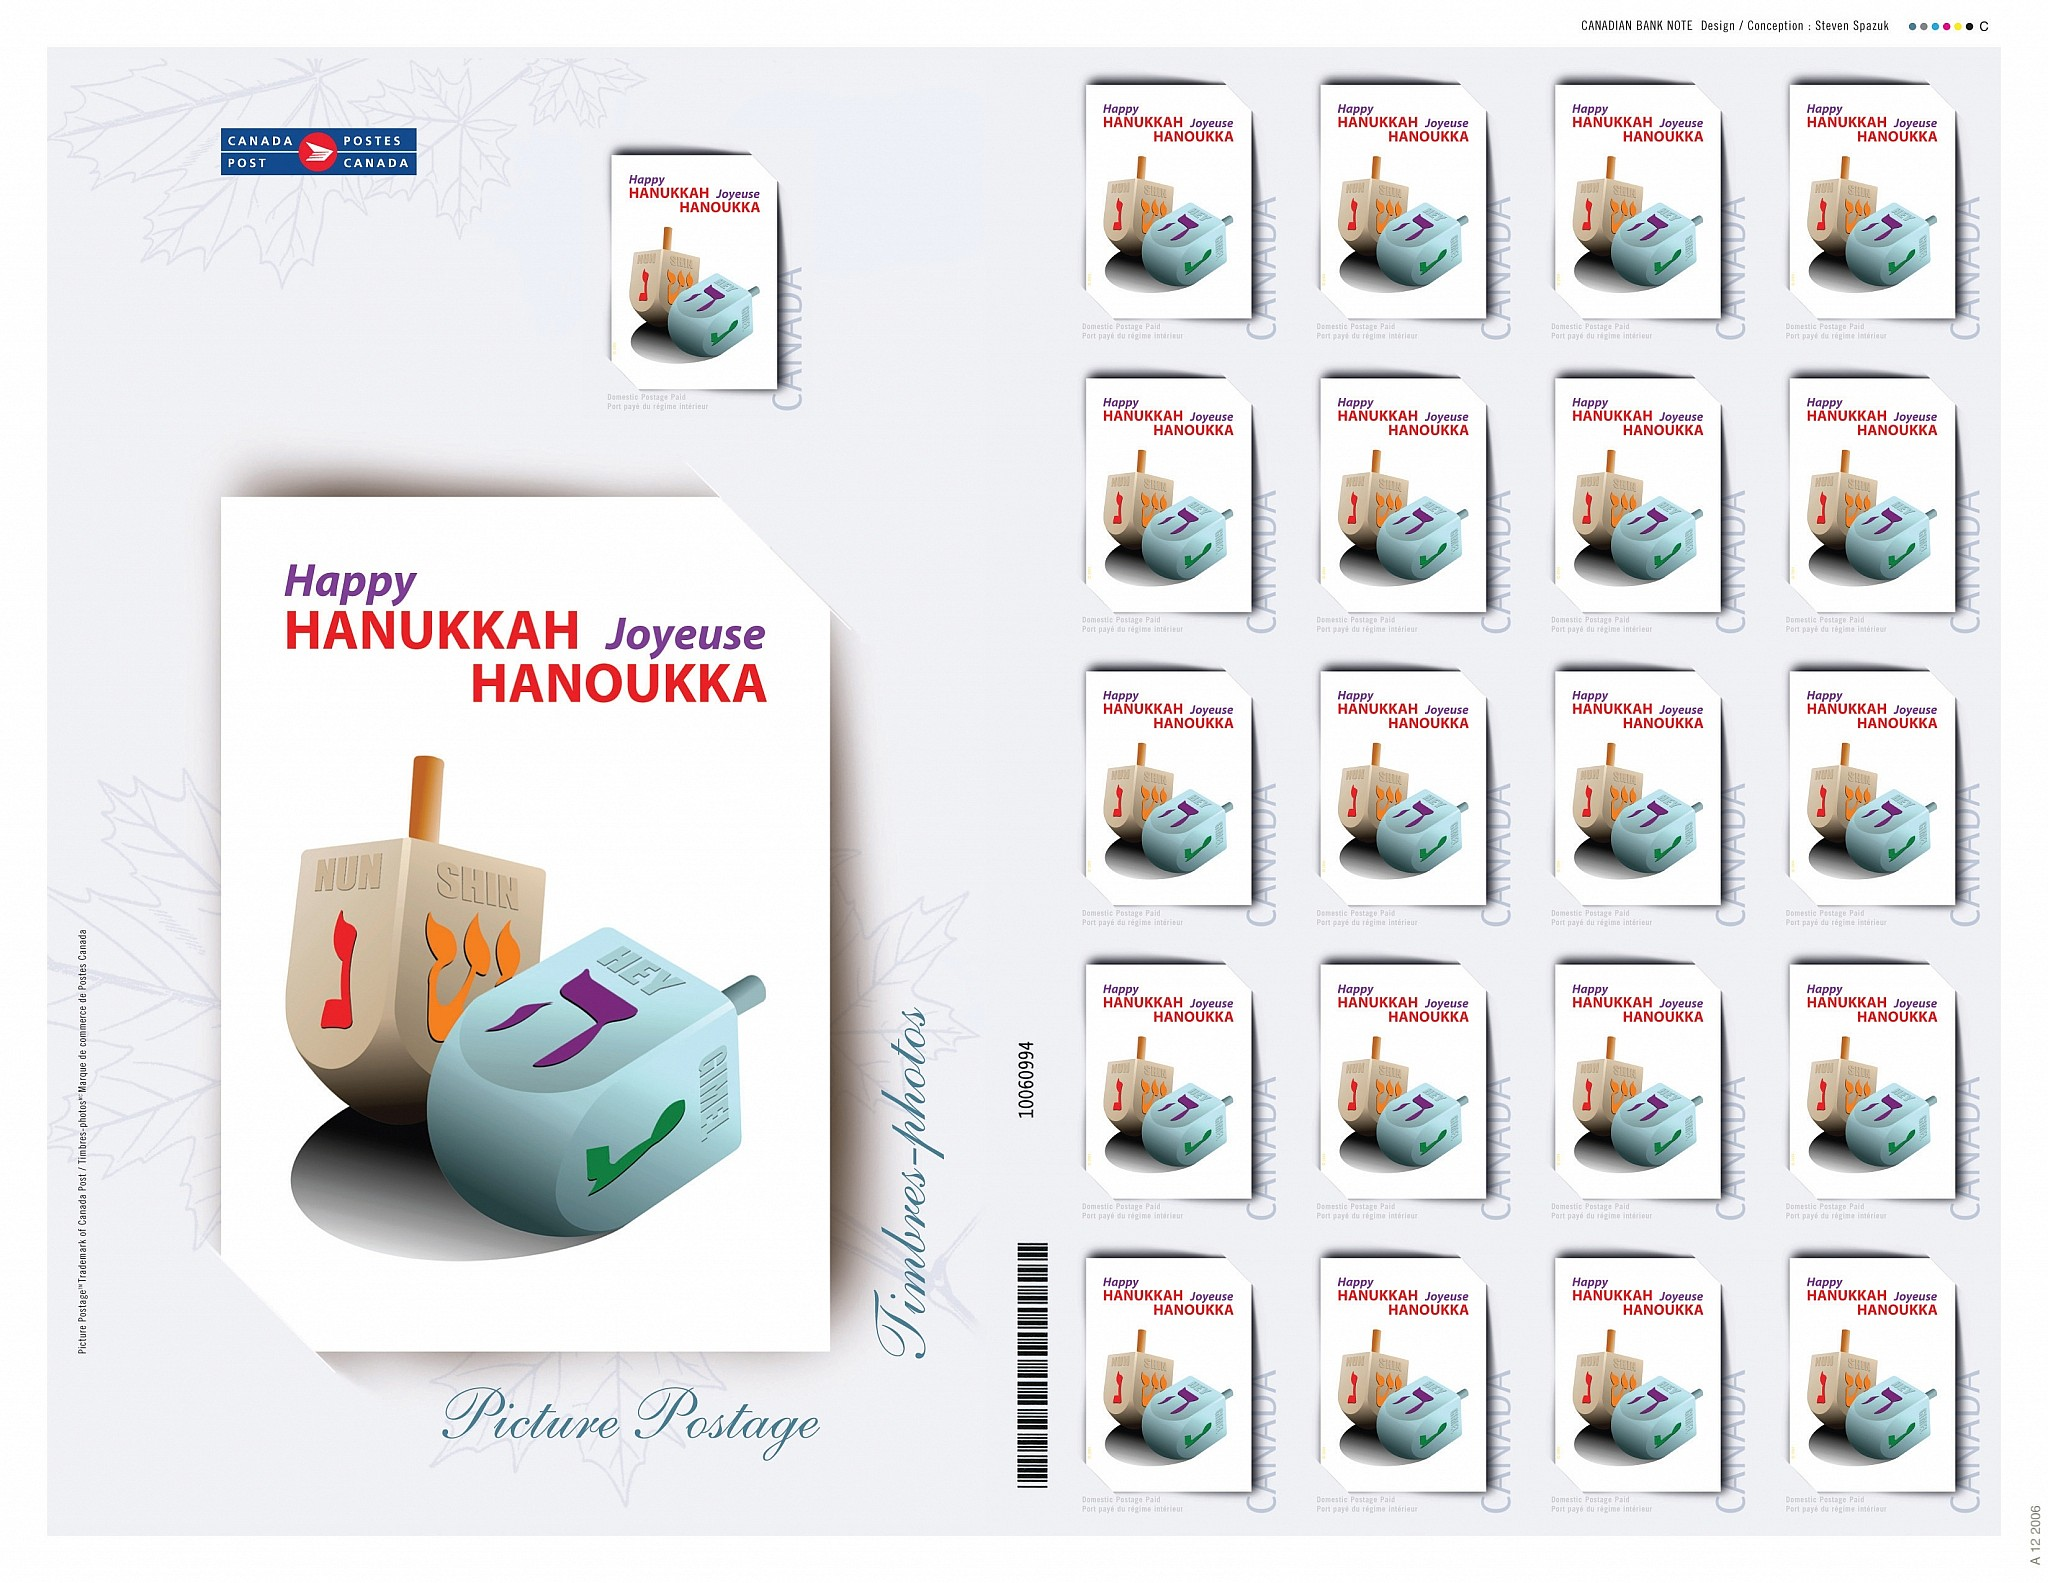 Canada Post Introduces Its First Hanukkah Stamp The Times Of Israel